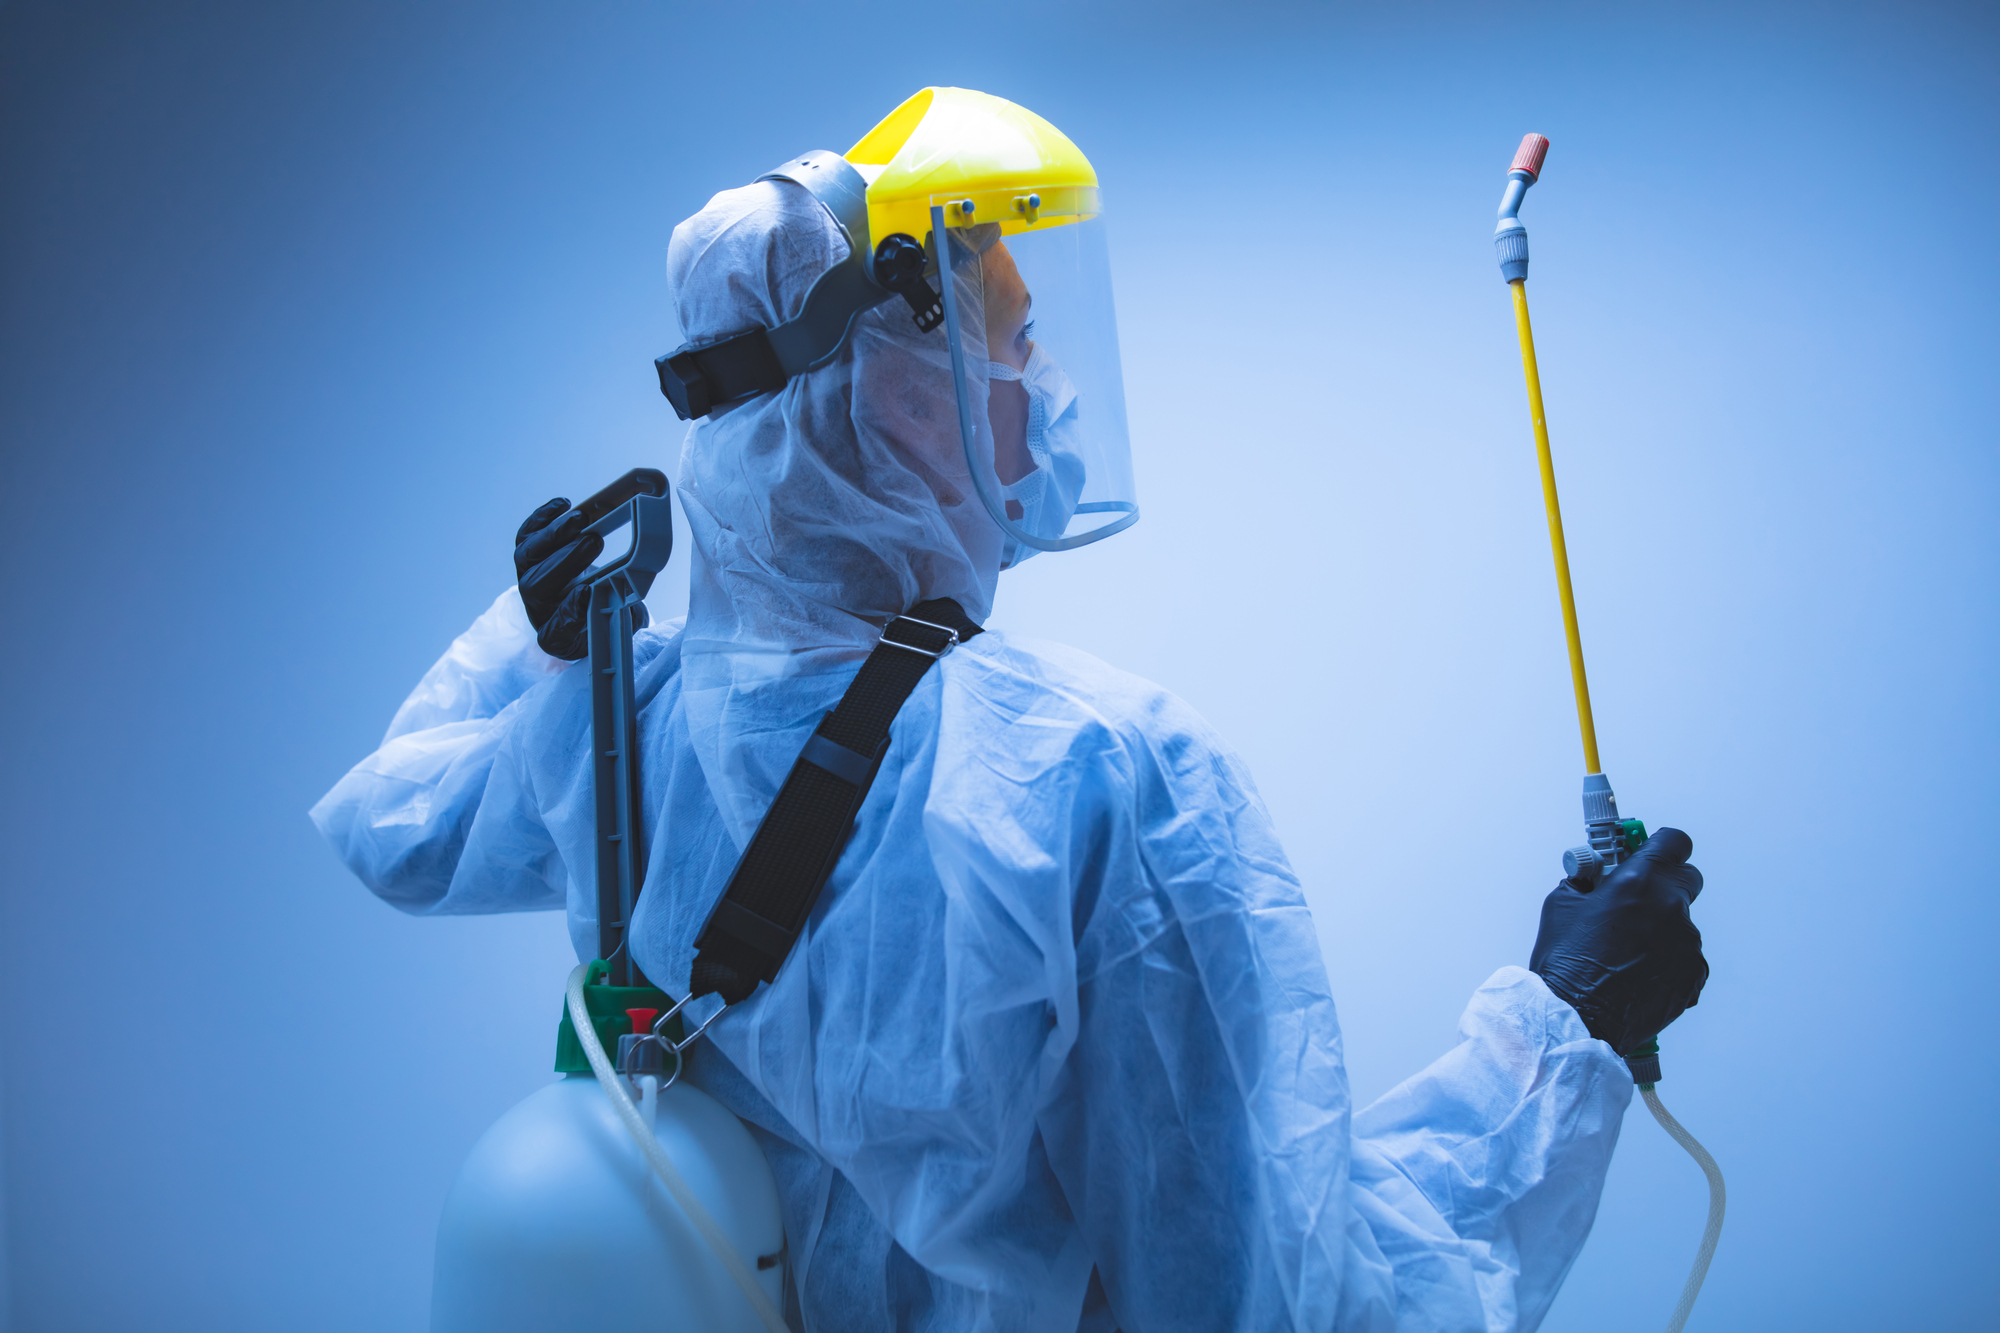 Commercial Cleaner In Hazmat Suit Disinfecting Commercial Office Buildings Against CoronaVirus With Chemical Sprayer